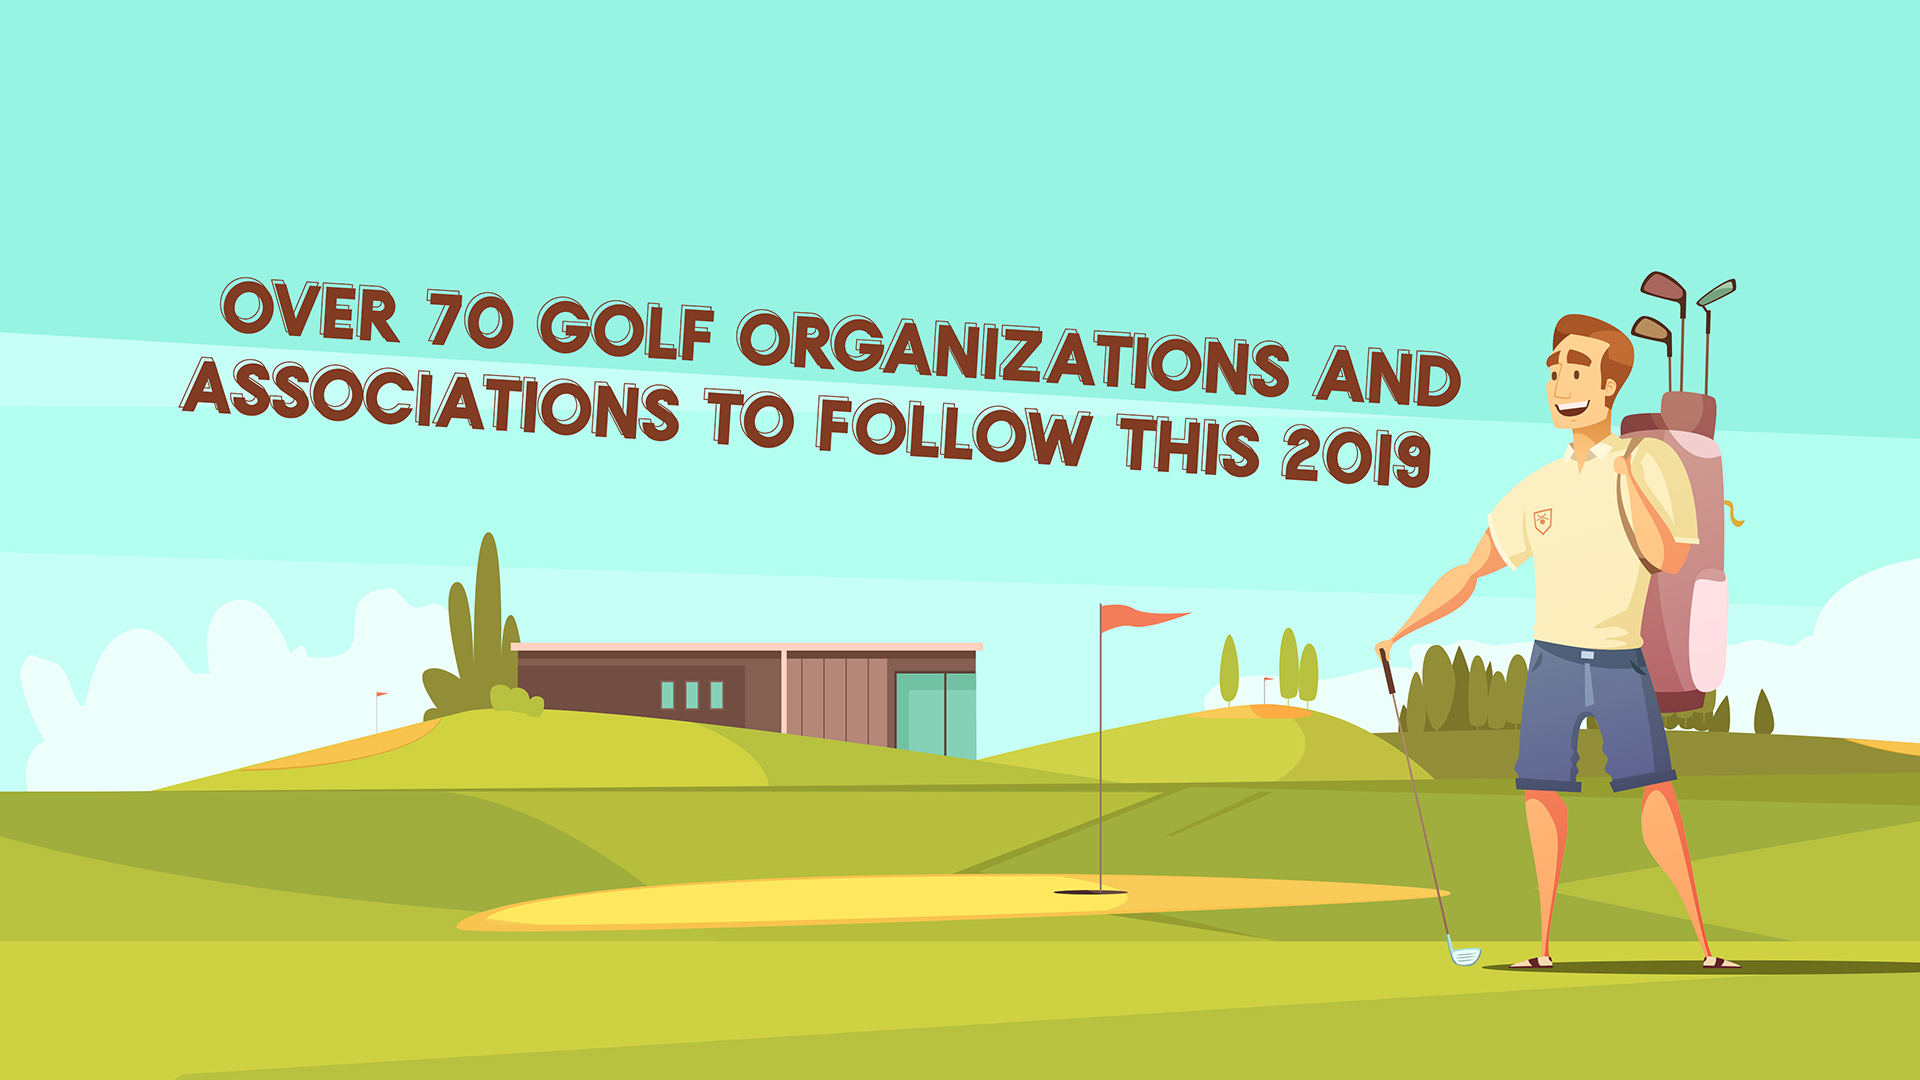 Top Golf Organization and Associations to Follow This 2019